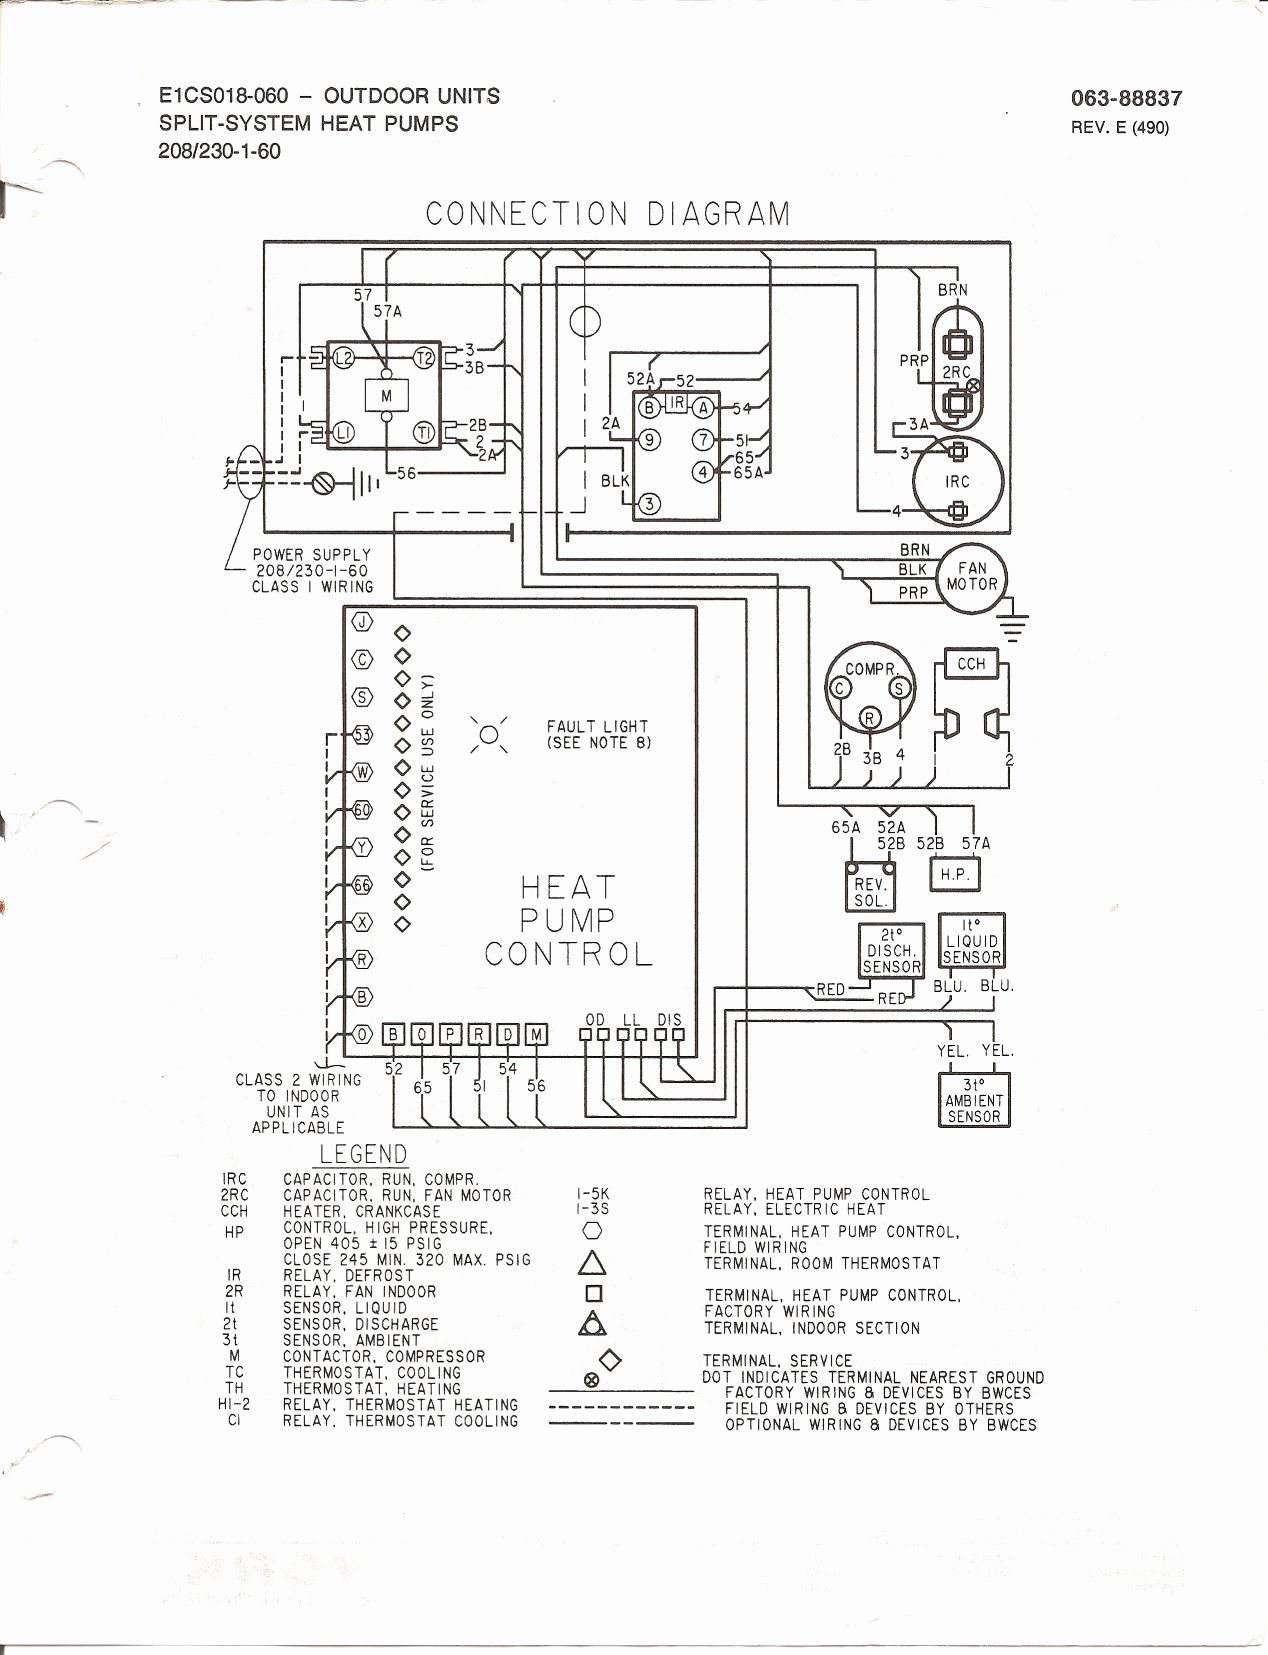 Furnace Control Board Wiring Diagram Volovets Info